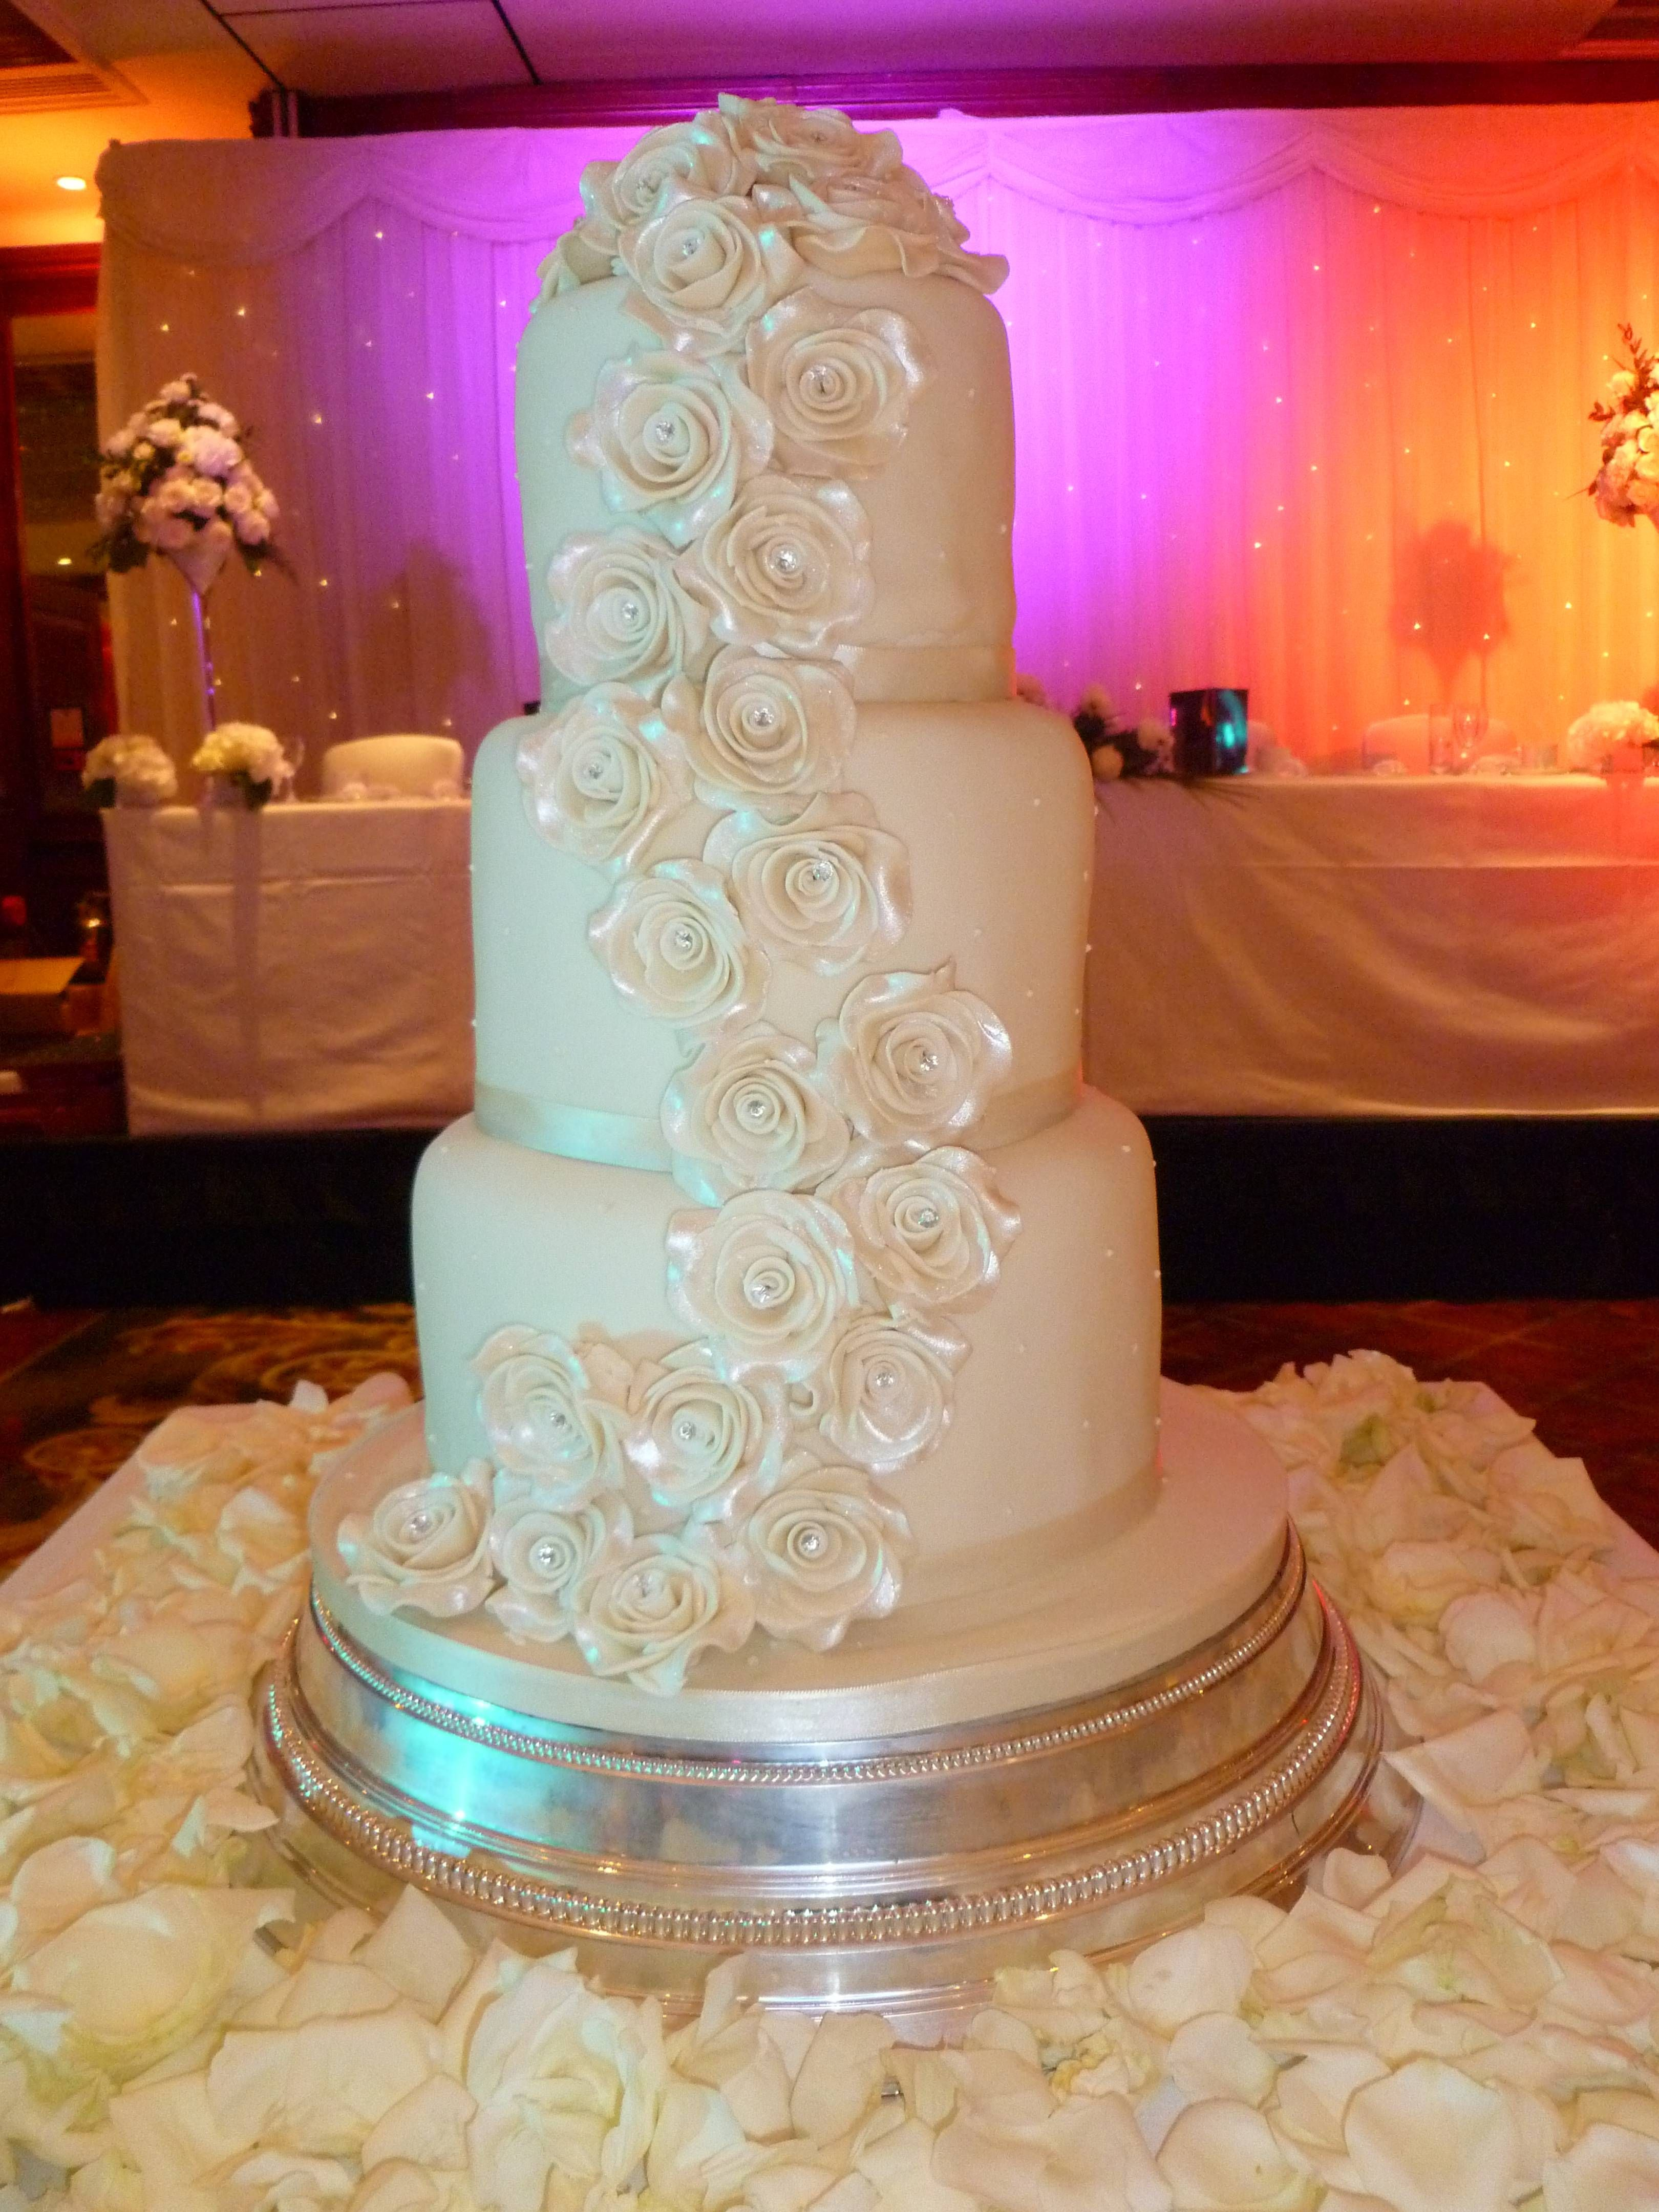 Wedding cake in london white and silver by pjr beautiful cakes for